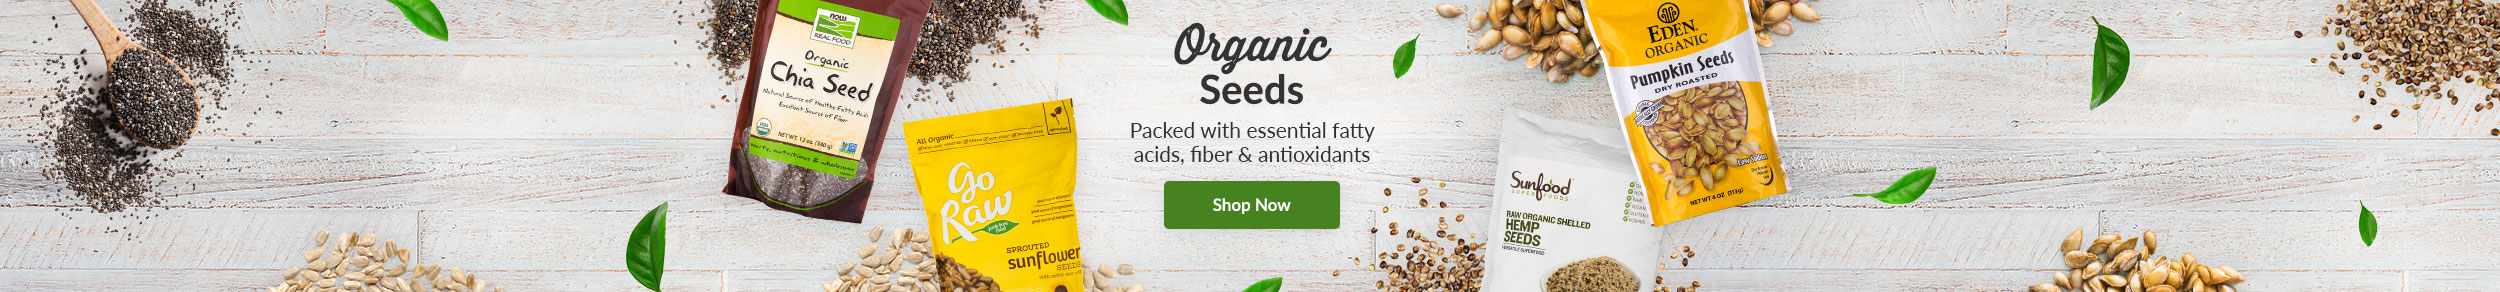 https://i3.pureformulas.net/images/static/Organic-Seeds_Food-4_092118.jpg